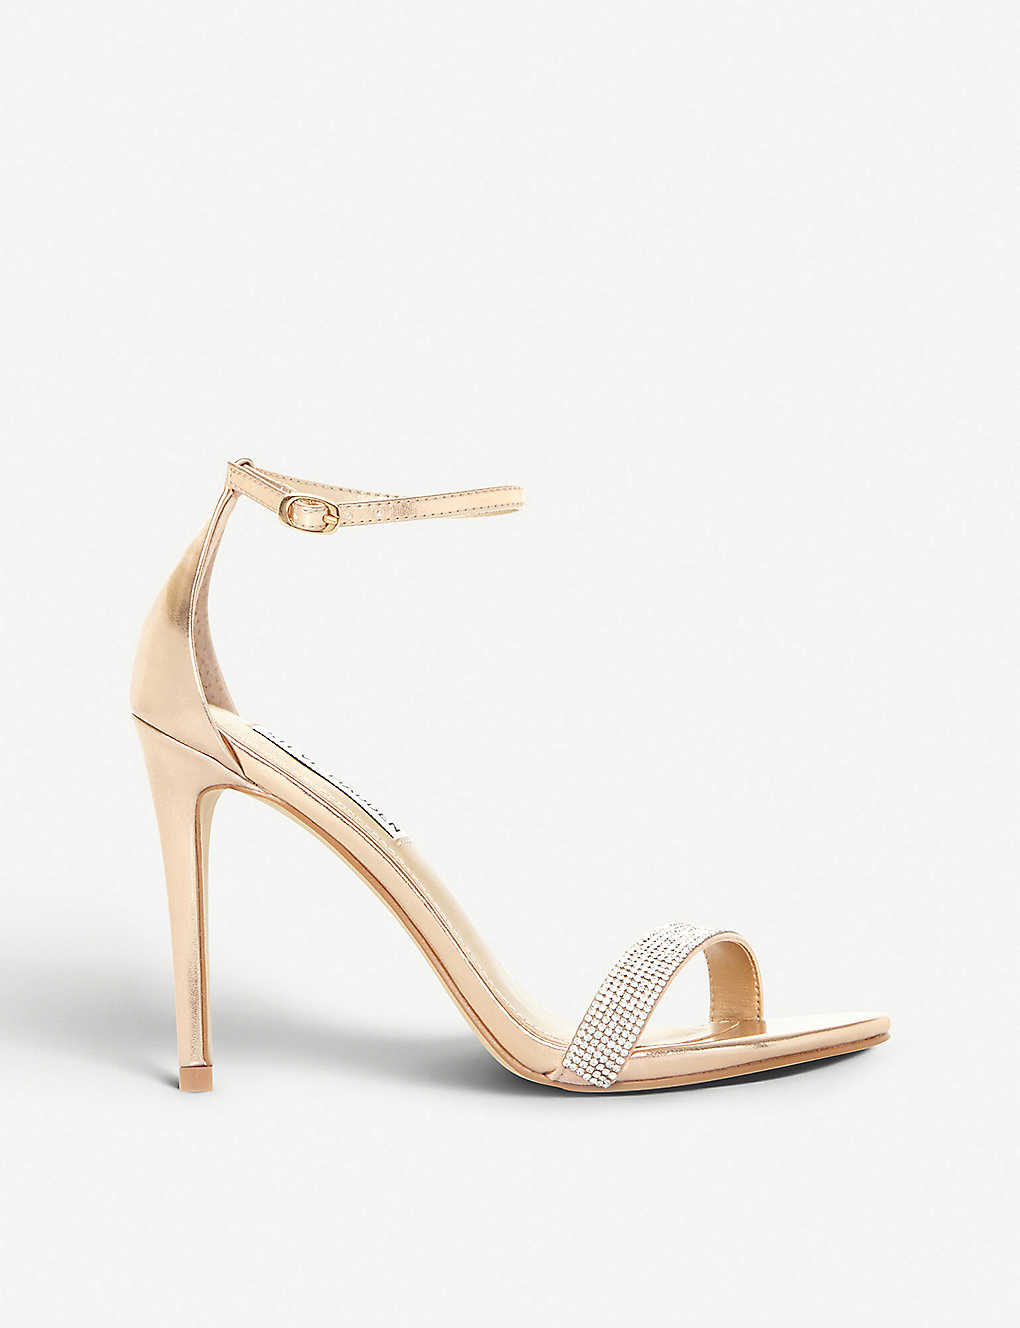 feafcb5cbc5 STEVE MADDEN - Stecy metallic faux-leather and diamanté sandals ...